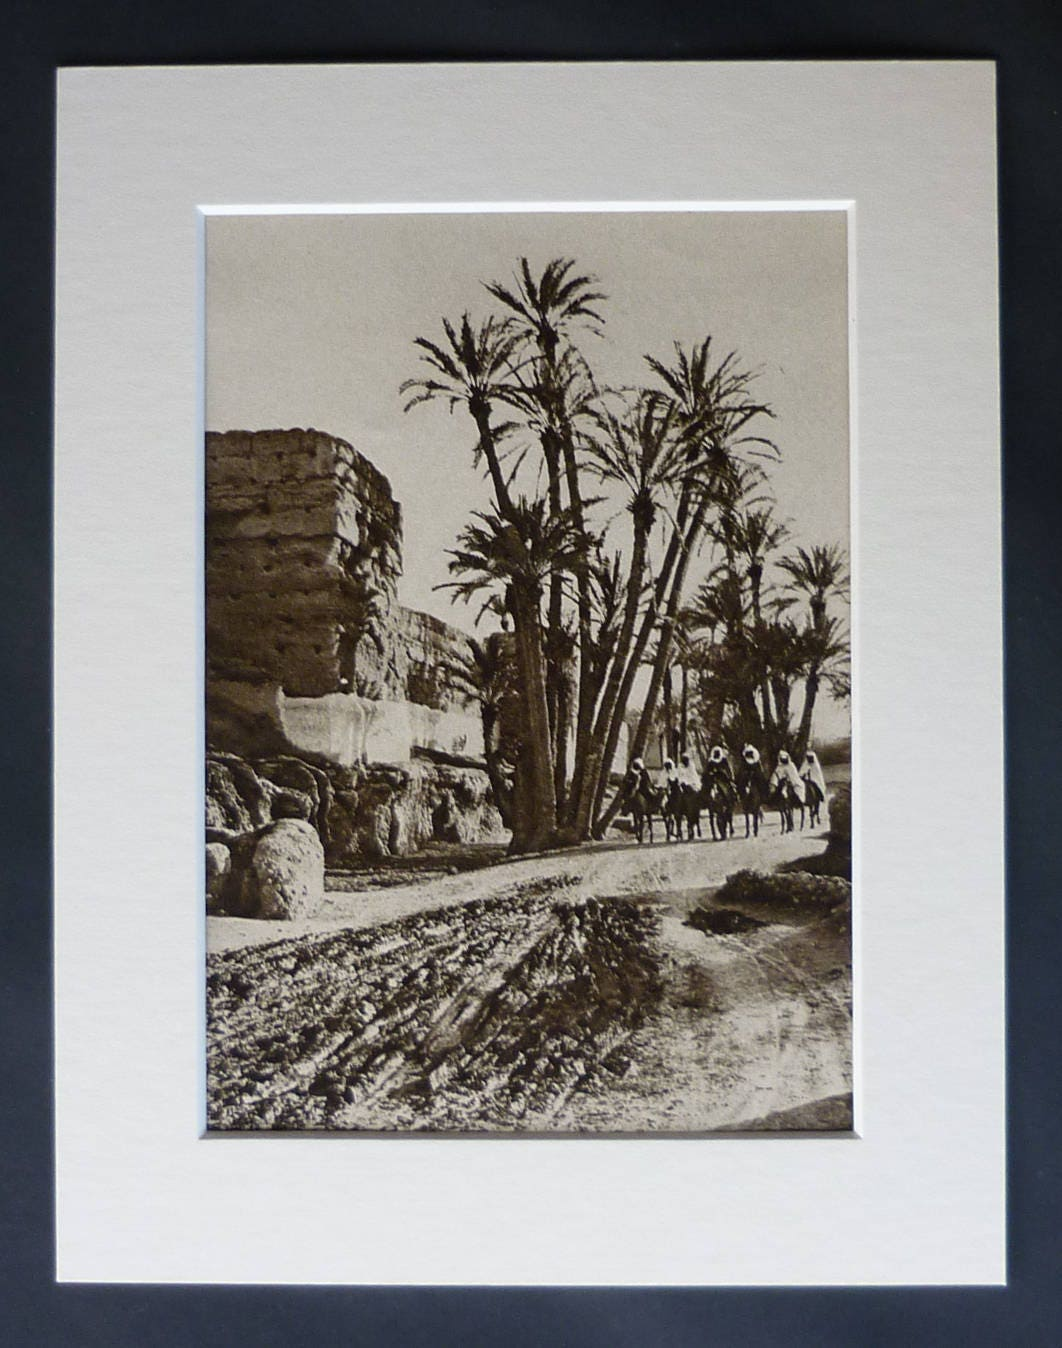 1920s Antique Morocco Print Available Framed Medina Art Marrakesh Walls Decor Old Moroccan Gift North African Picture Marrakech Photo